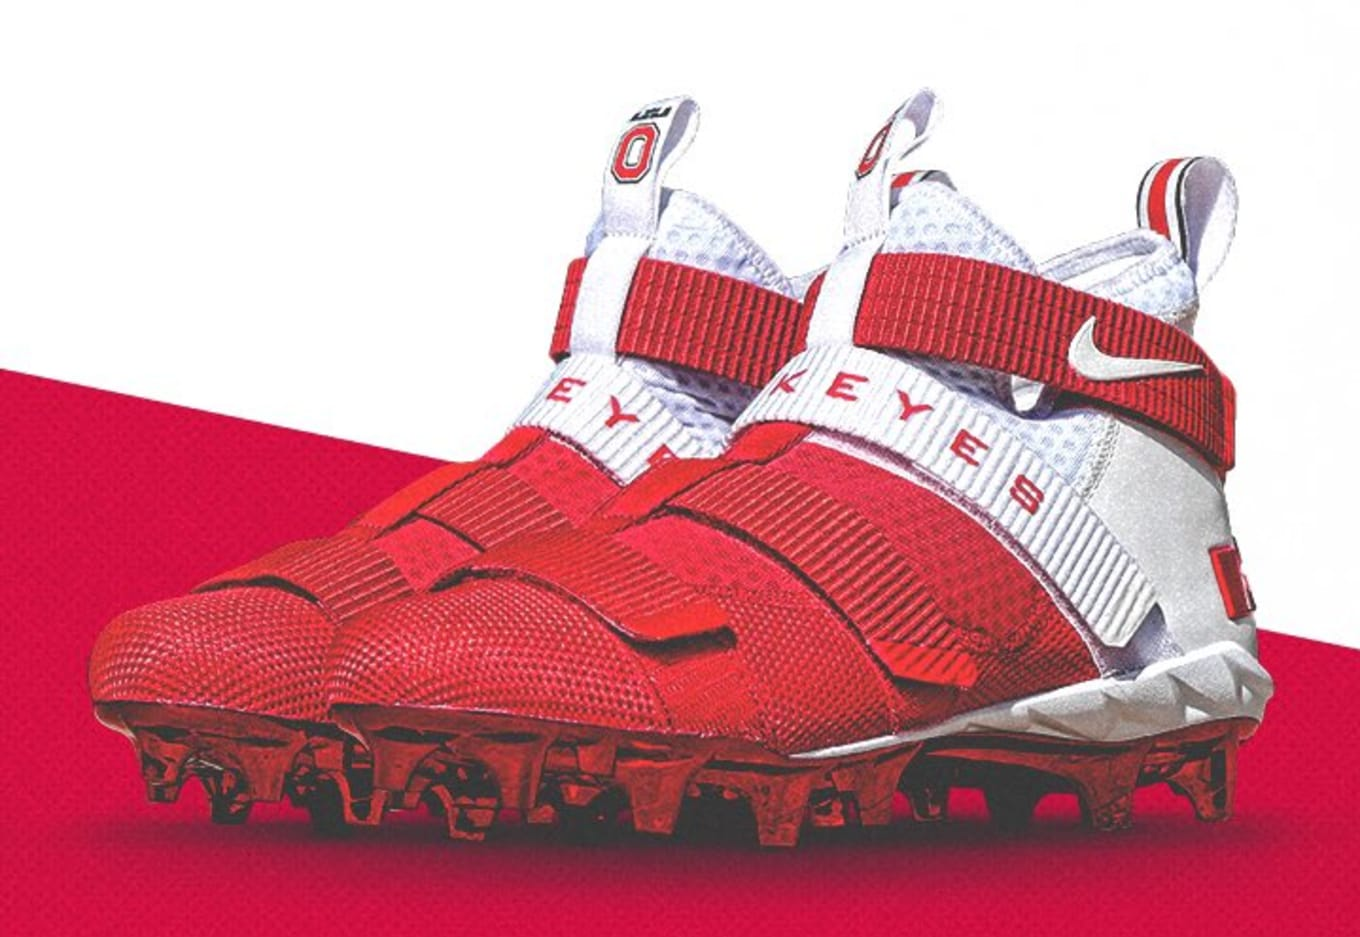 7fc1fae625f ... italy nike zoom lebron soldier 11 xi. images via ohio state football  af6bb 4139b